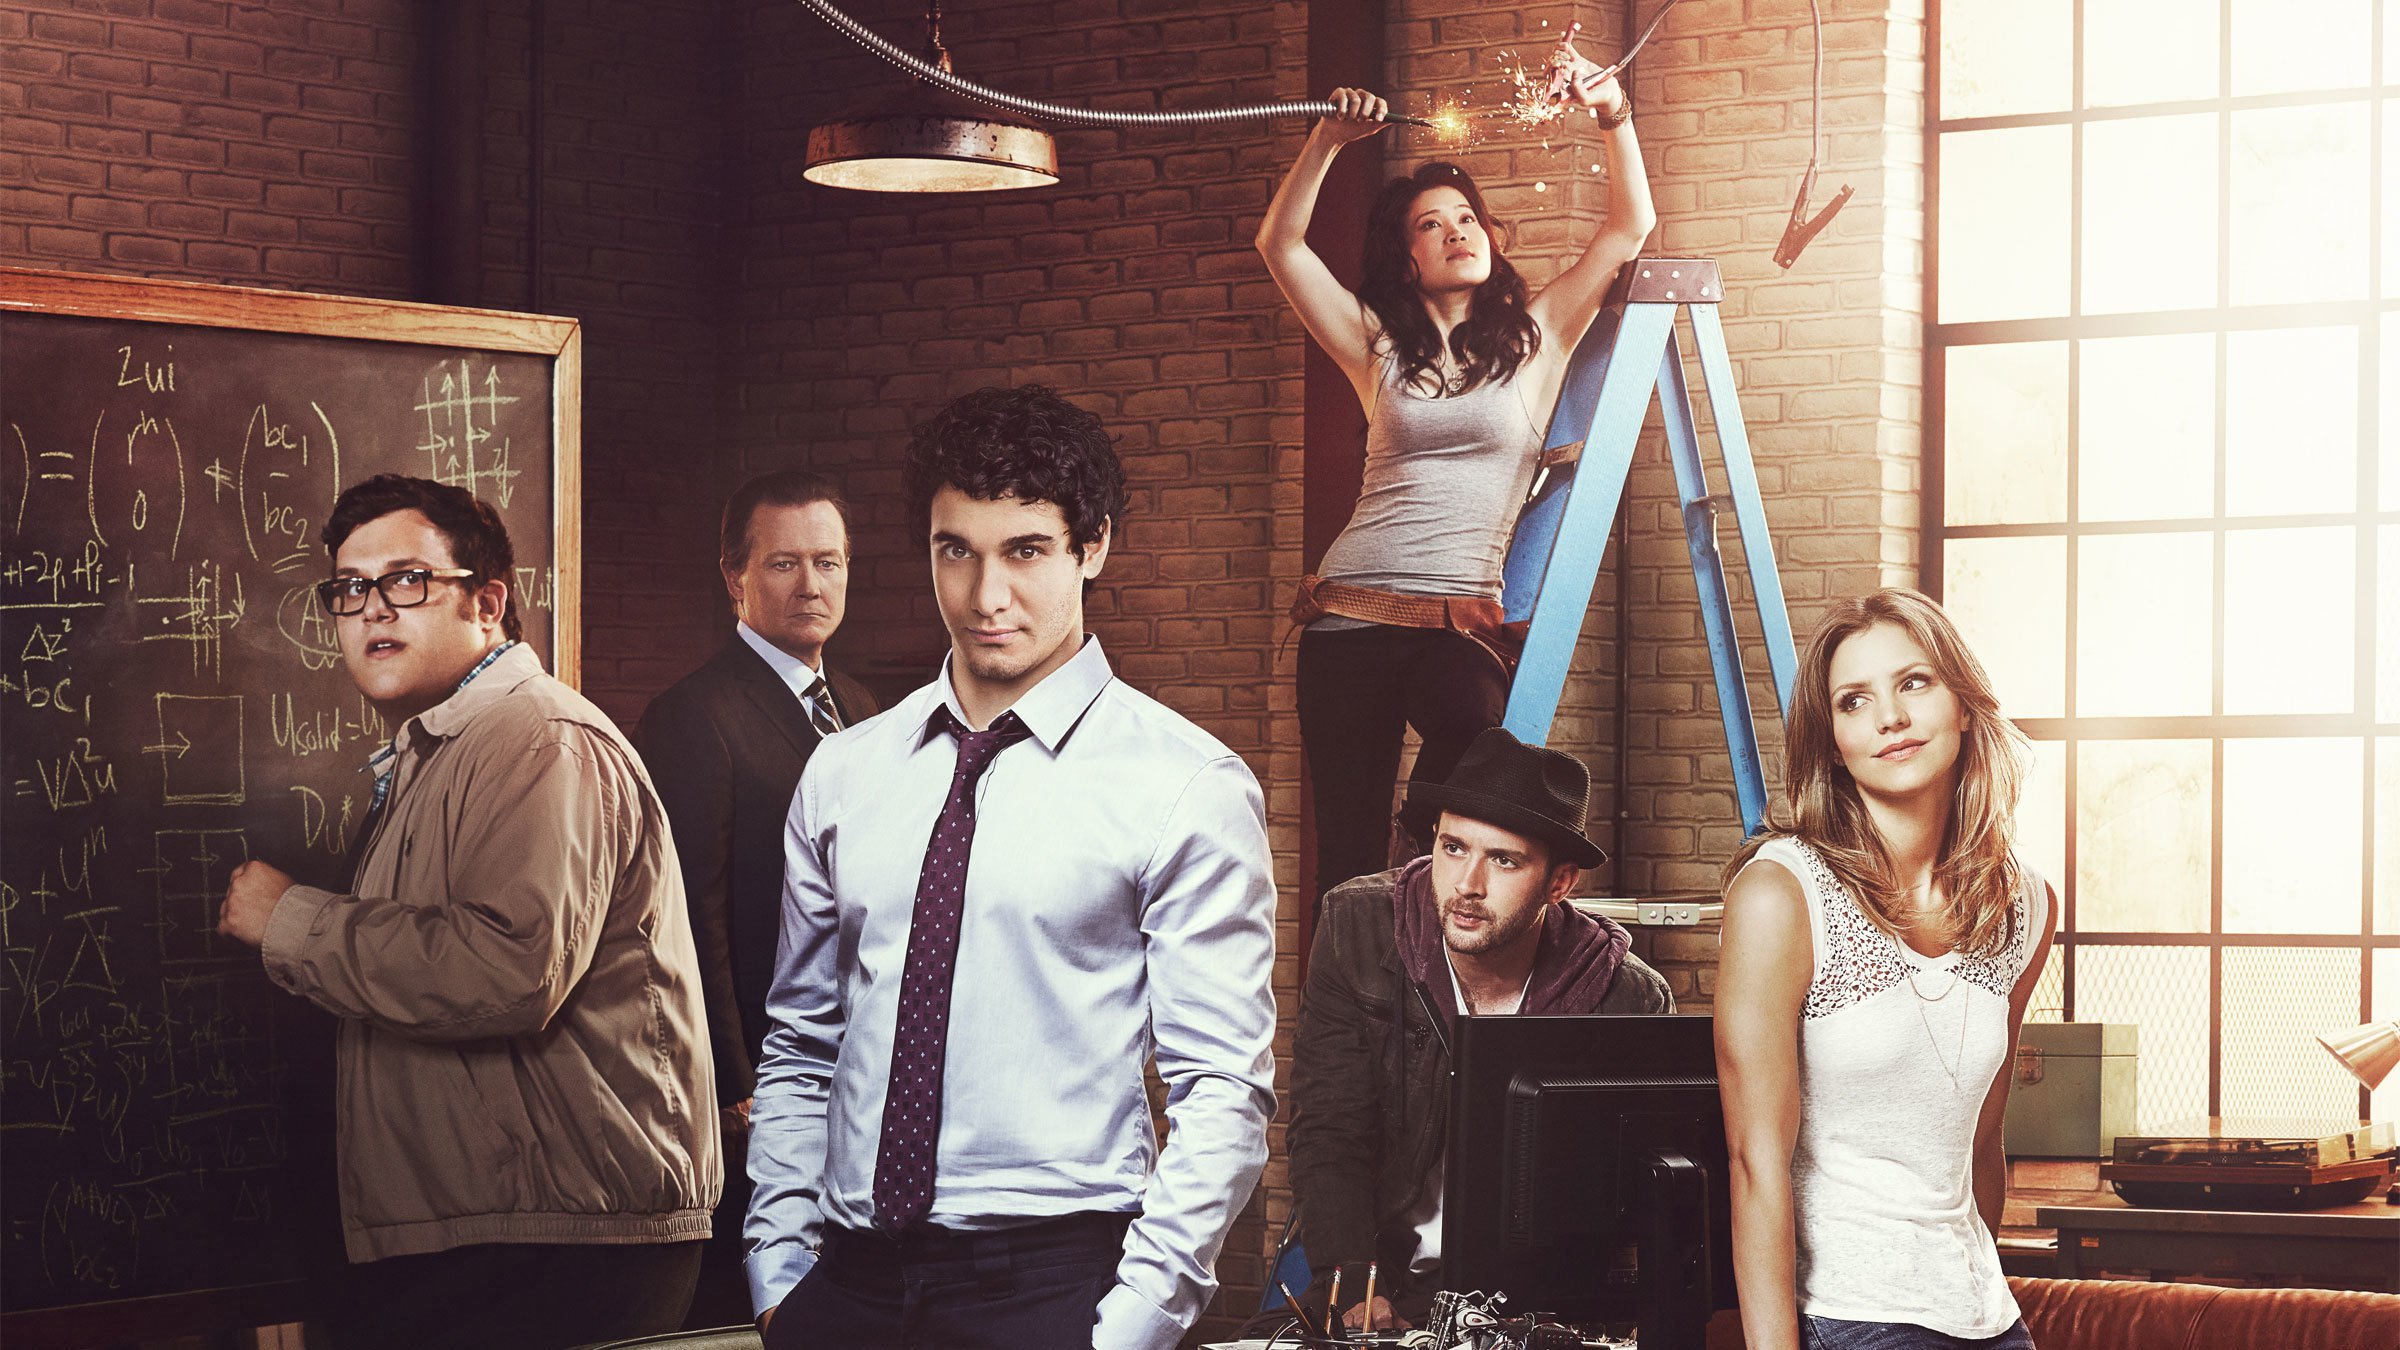 Scorpion Tv Show Hd Tv Shows 4k Wallpapers Images Backgrounds